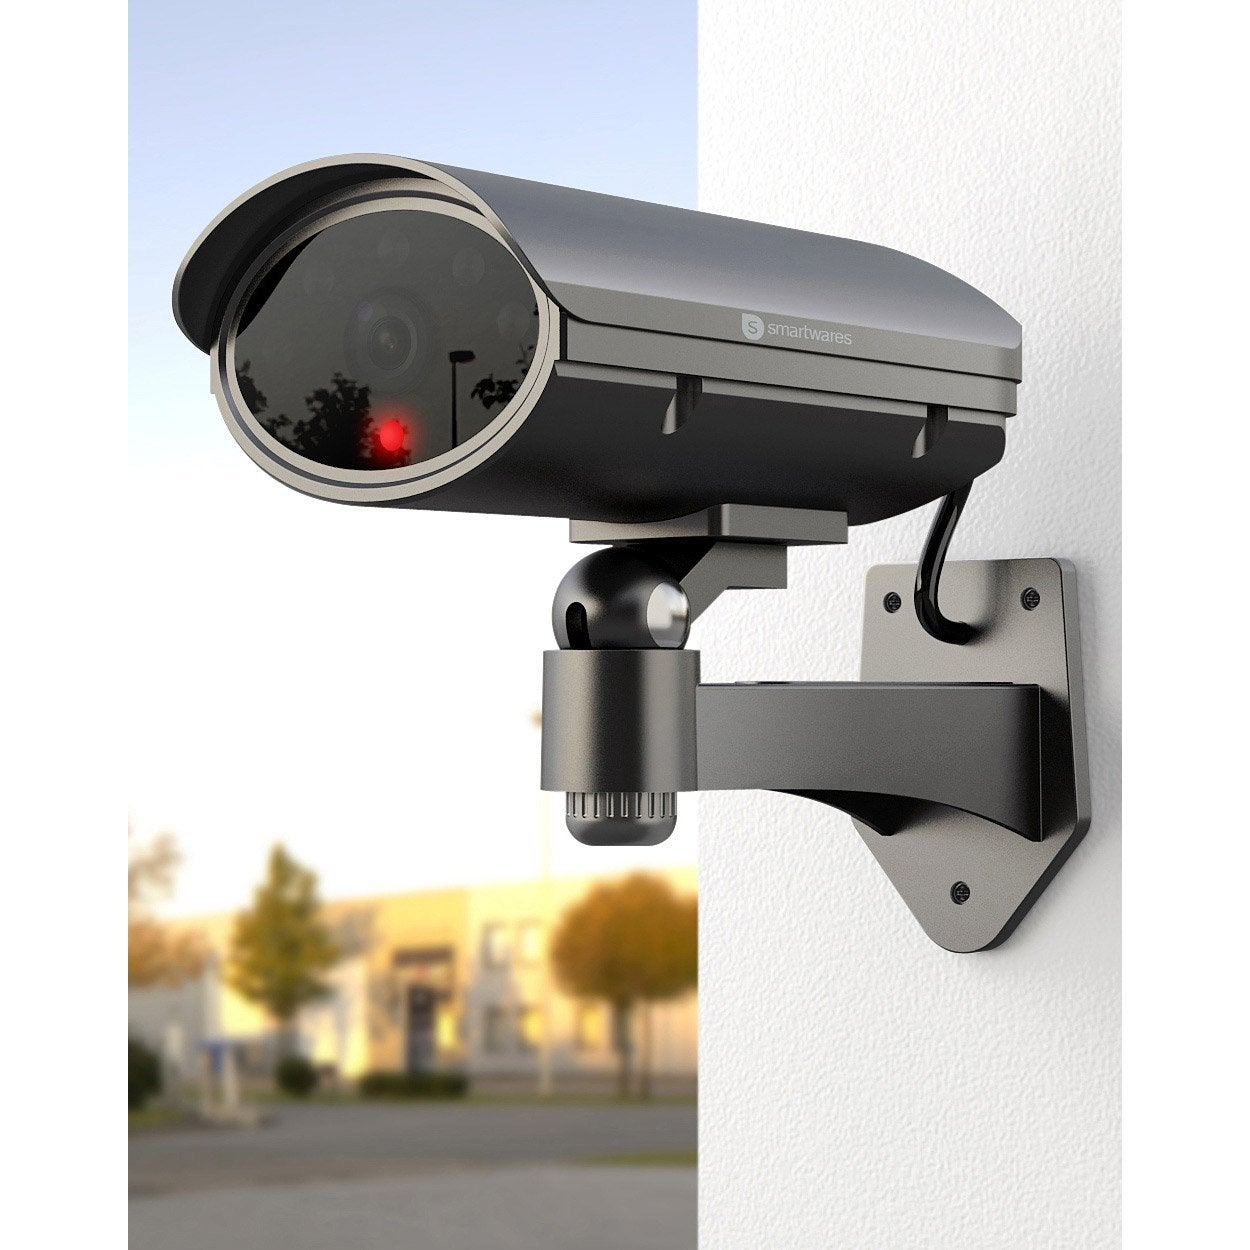 Cam ra factice motoris e smartwares cs90d leroy merlin for Video surveillance sans fil exterieur avec enregistrement